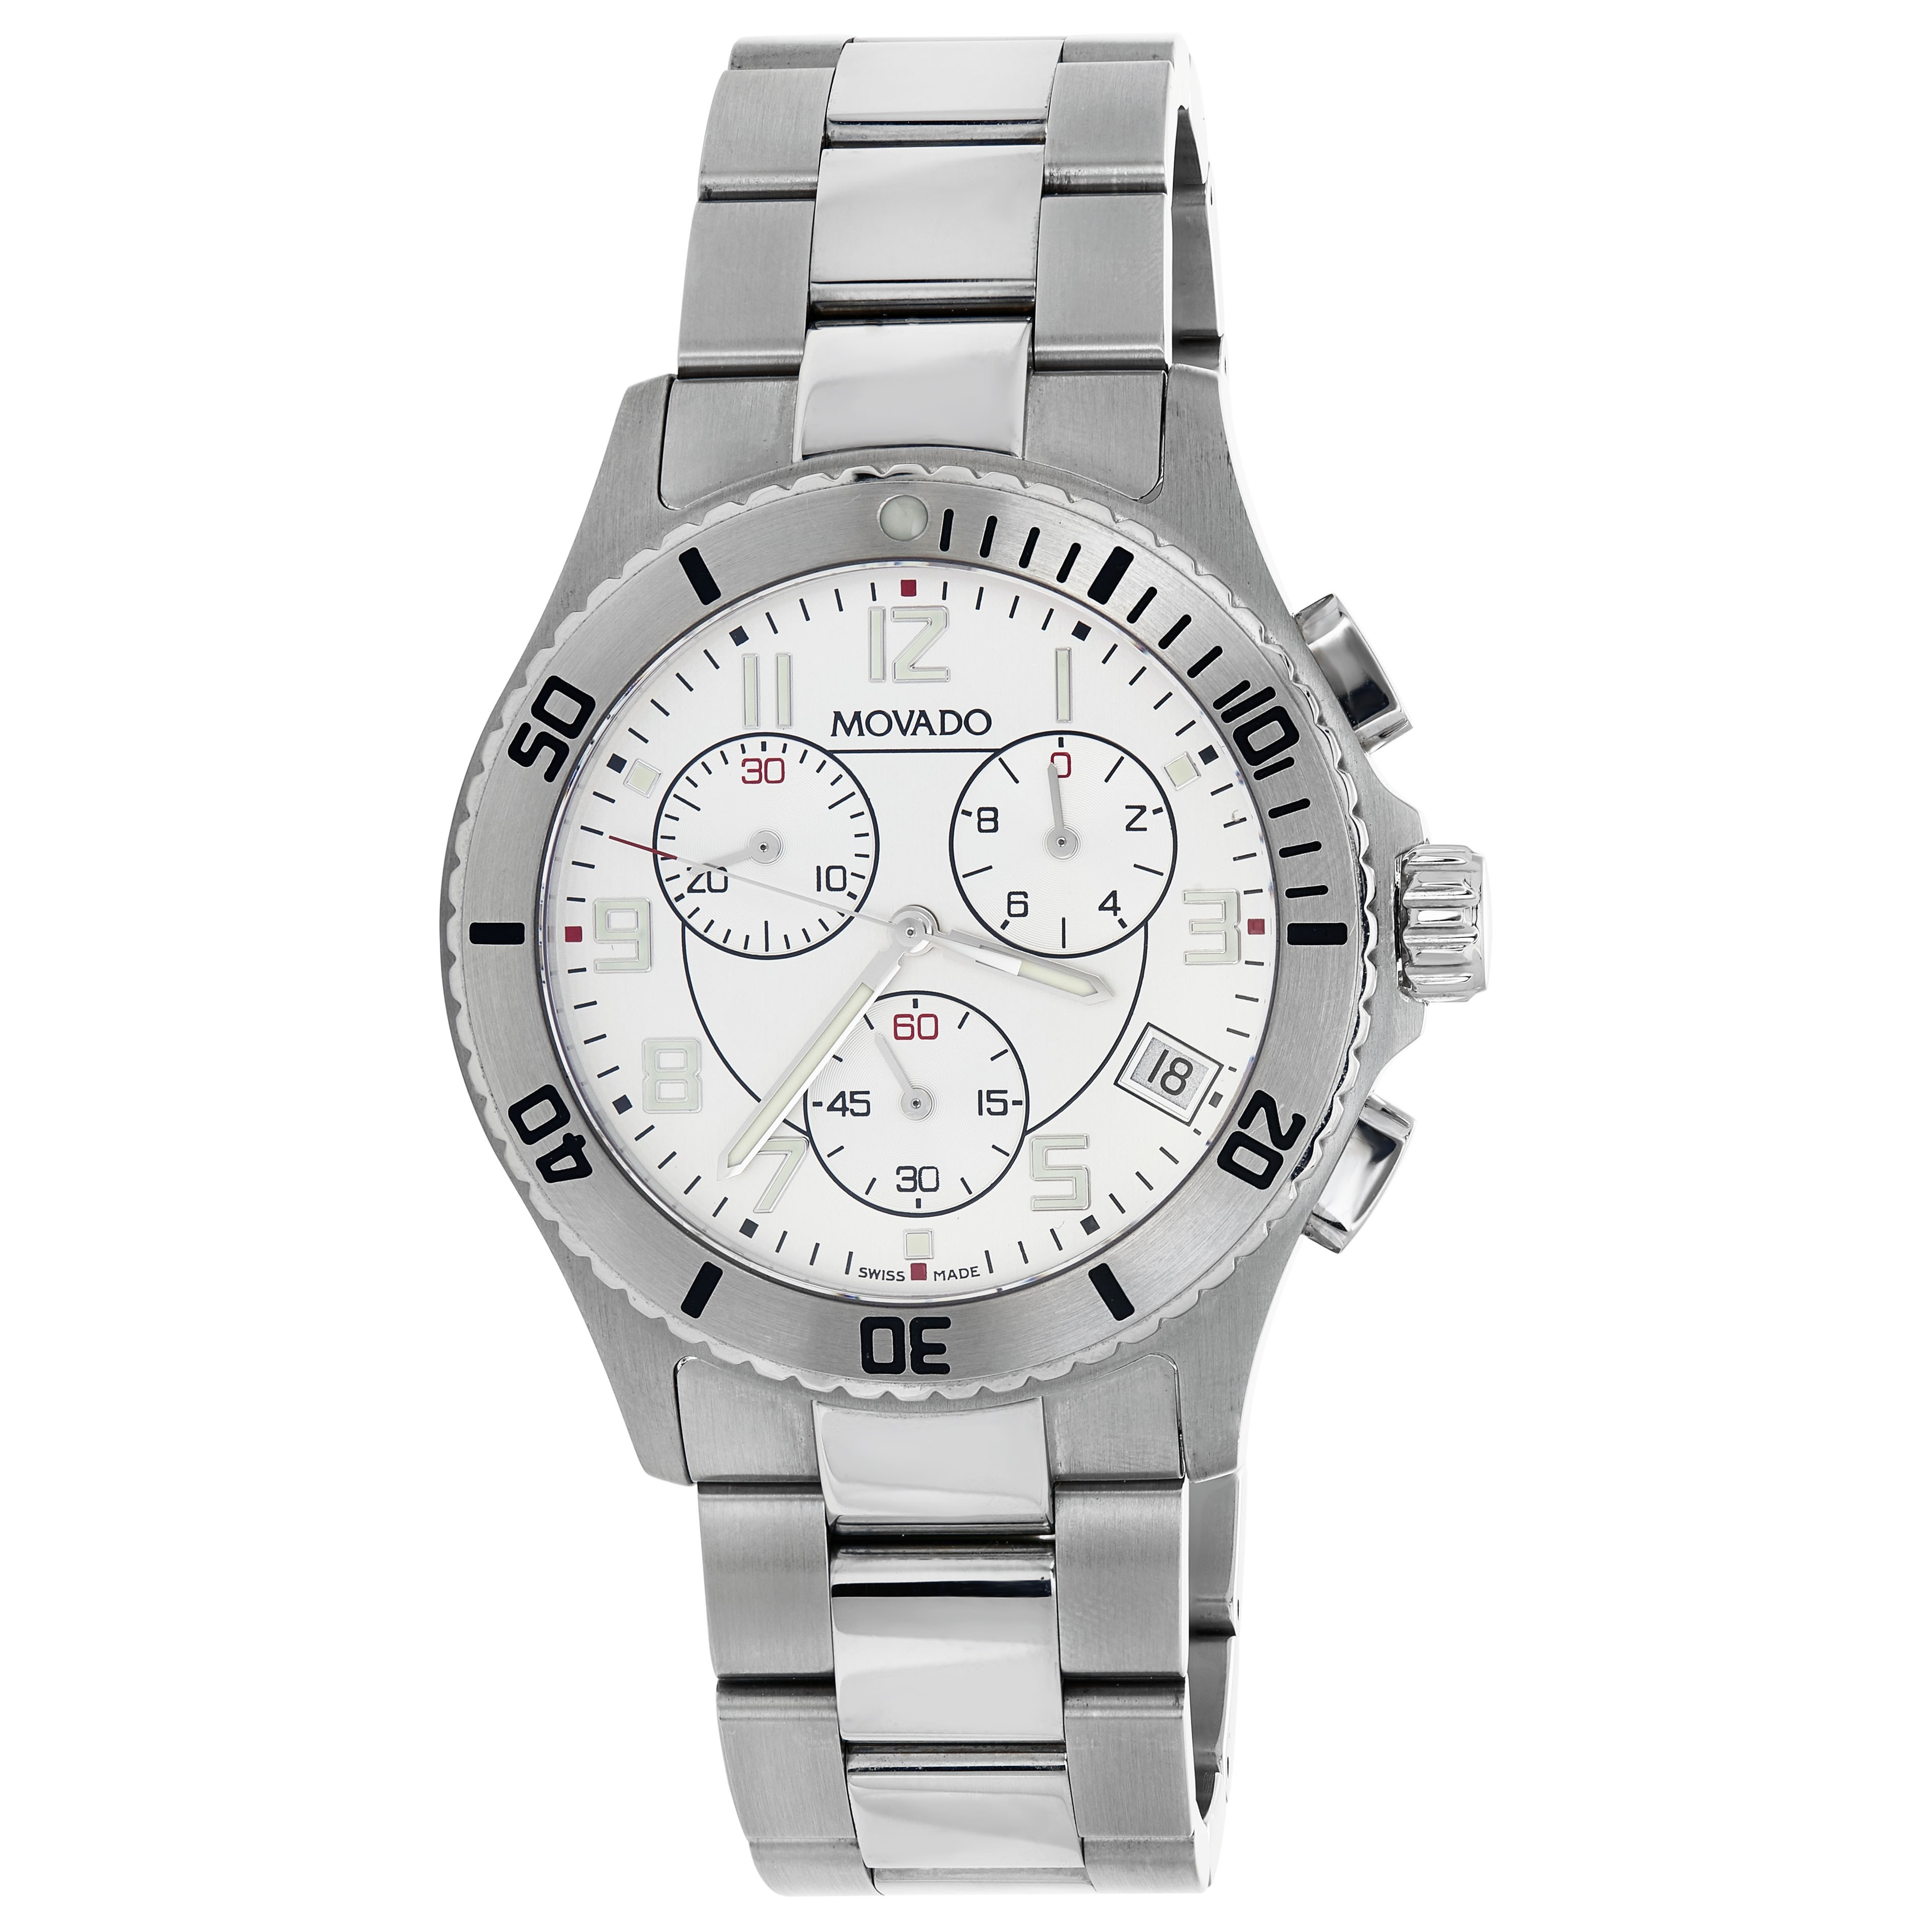 Movado Men's Stainless Steel Chronograph Watch